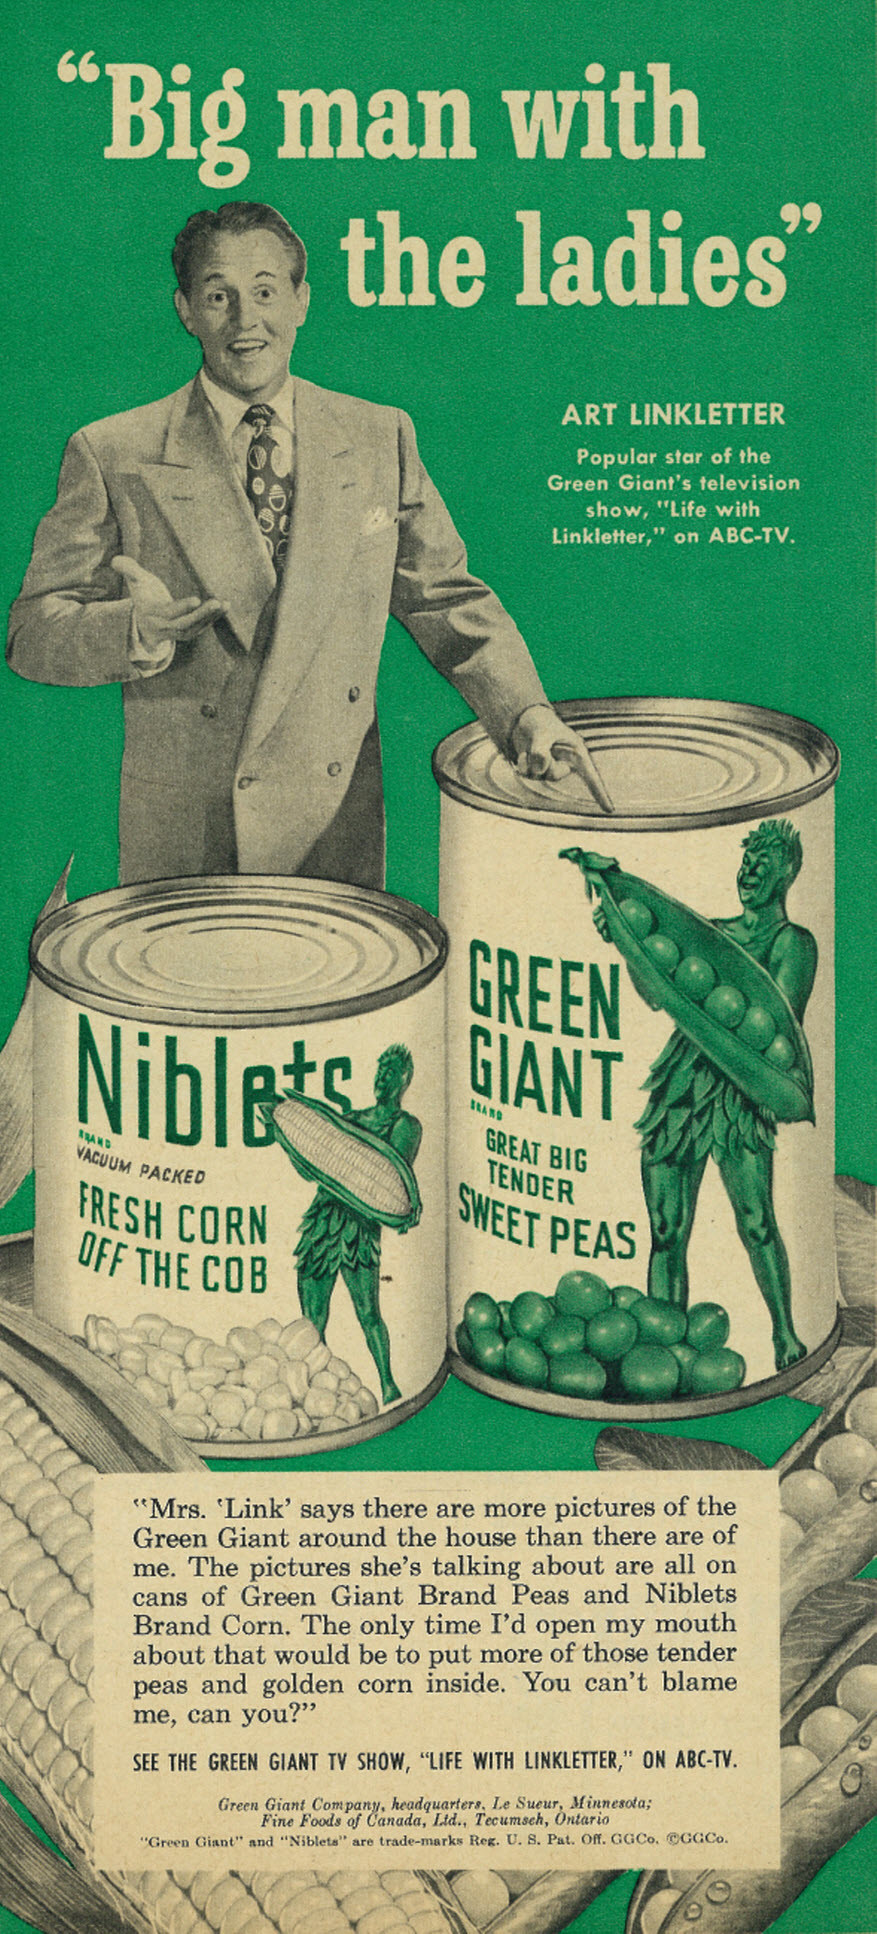 Green Giant Company - Big Man with the Ladies (featuring Art Linkletter) | Flickr